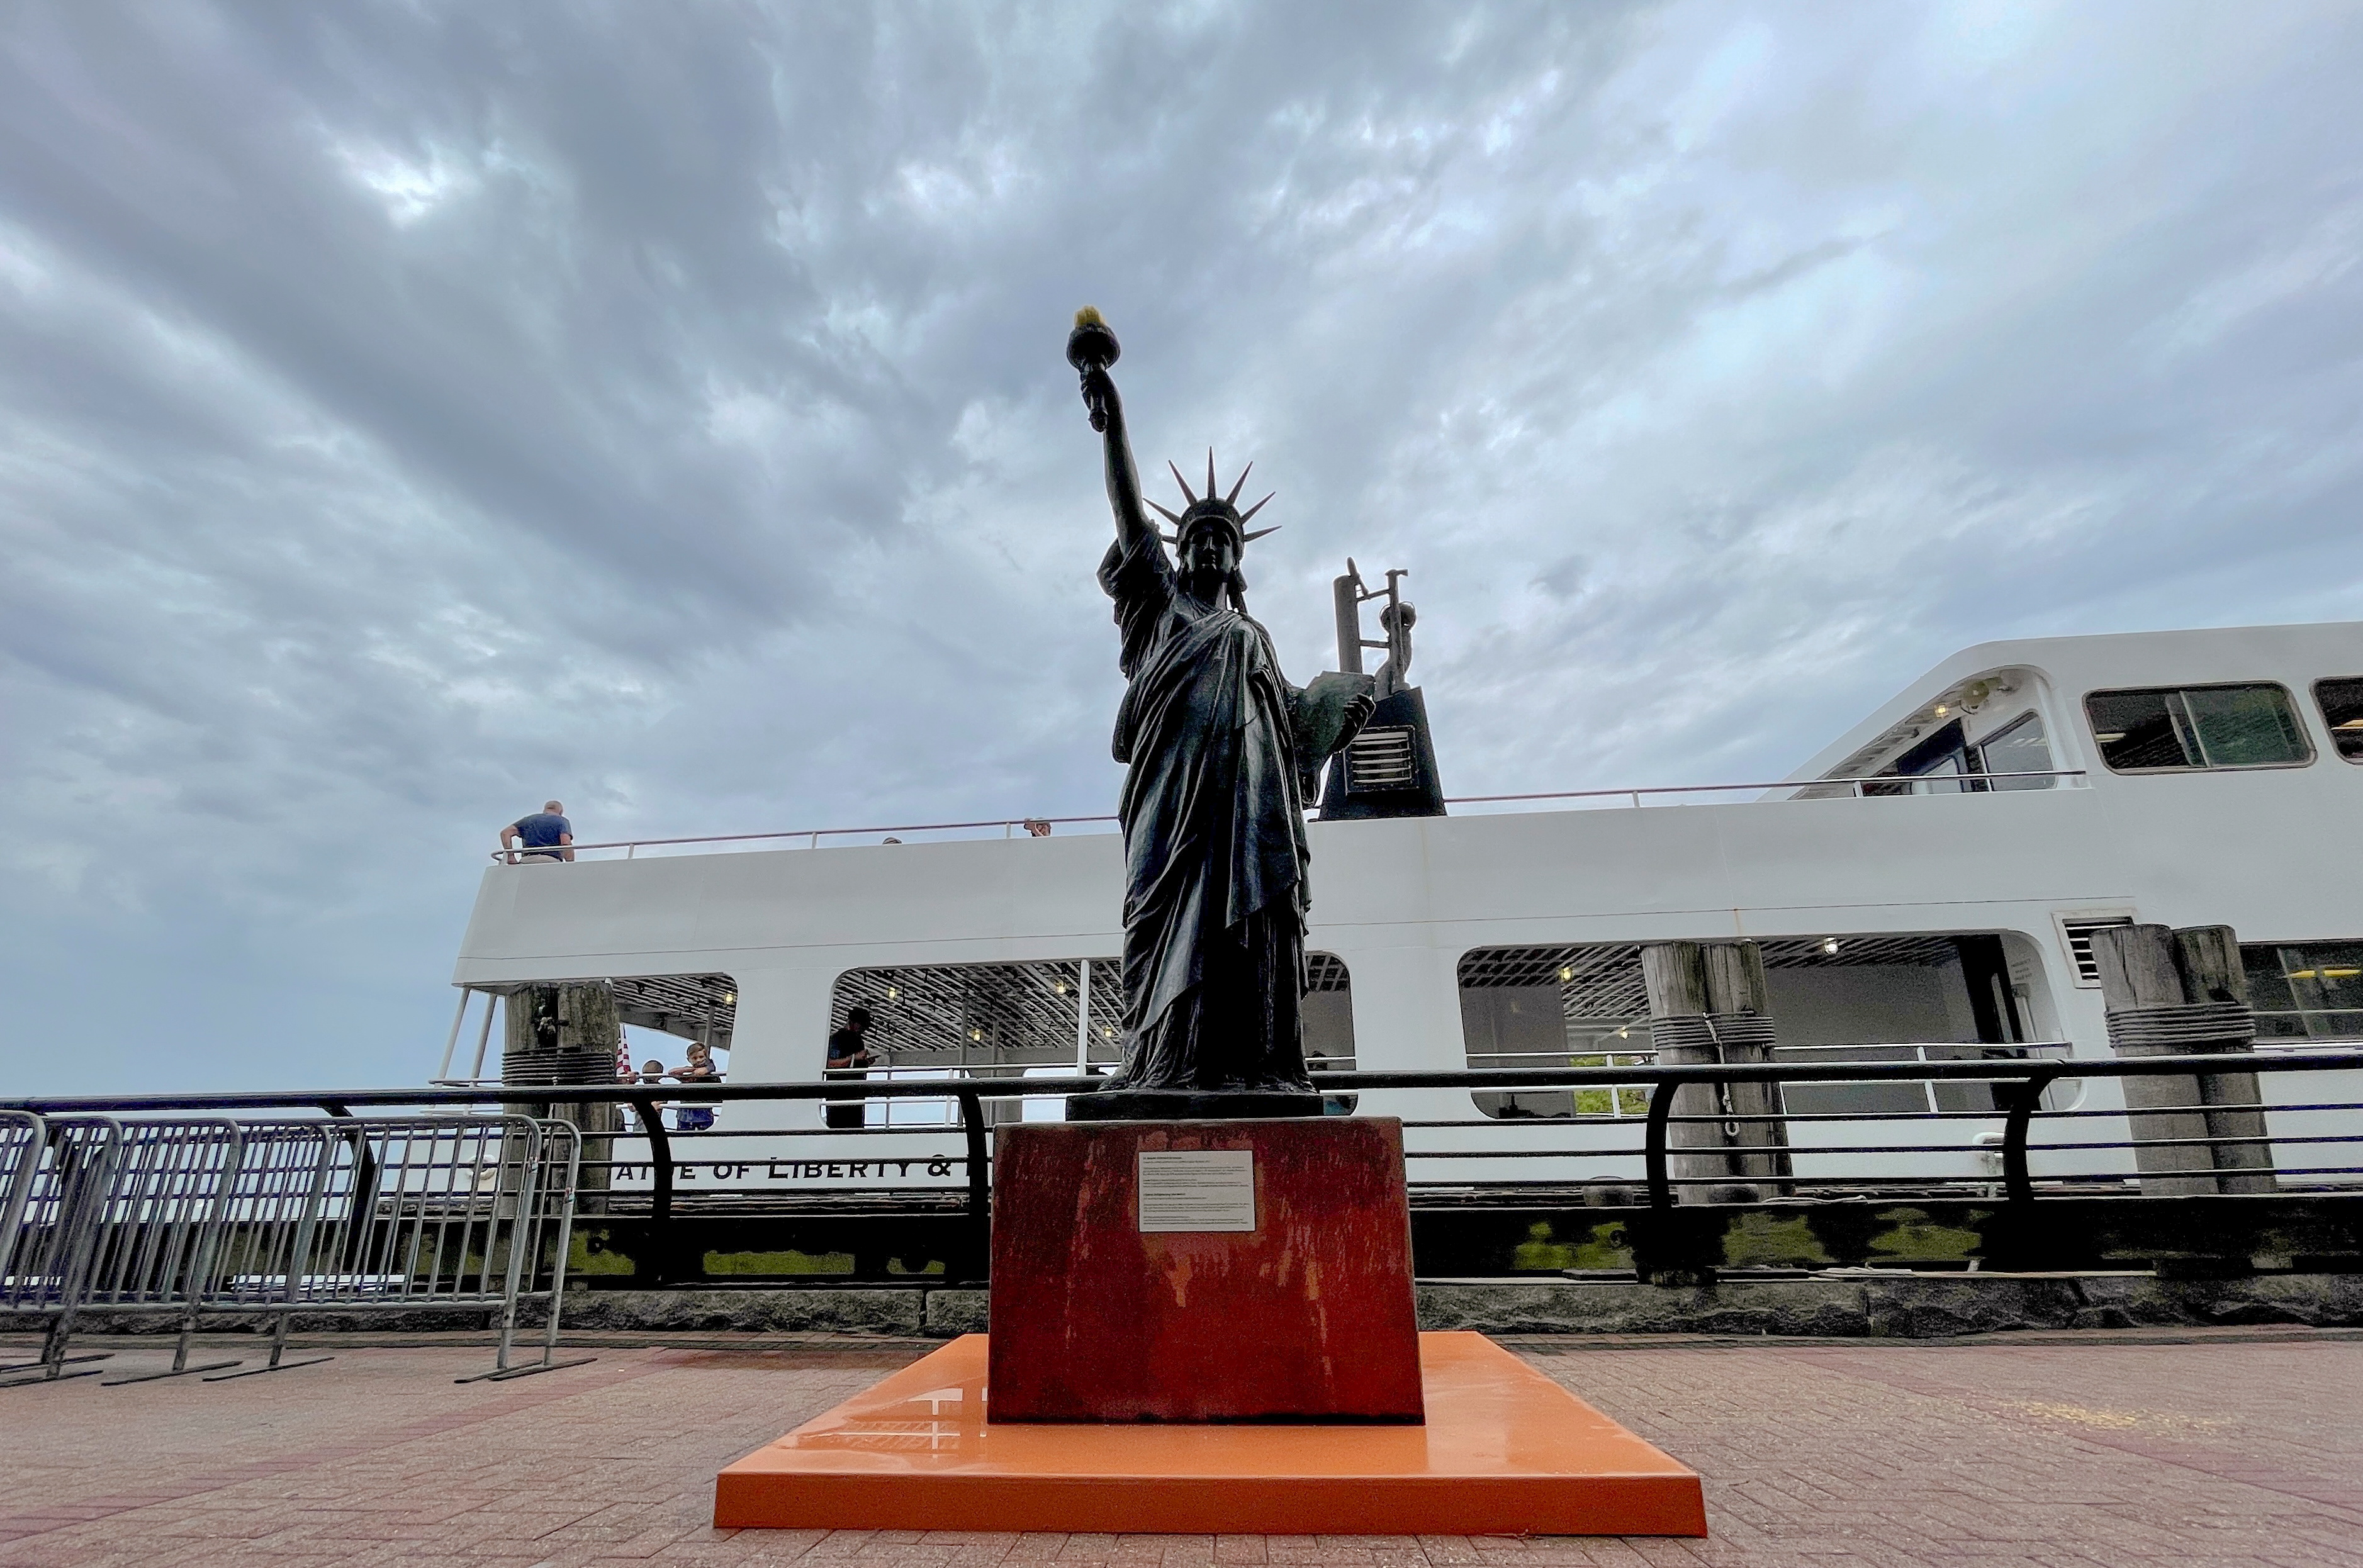 A replica Statue of Liberty is installed on Ellis Island across from her big sister in New York Harbor, New York City, New York, U.S., July 1, 2021. REUTERS/Roselle Chen